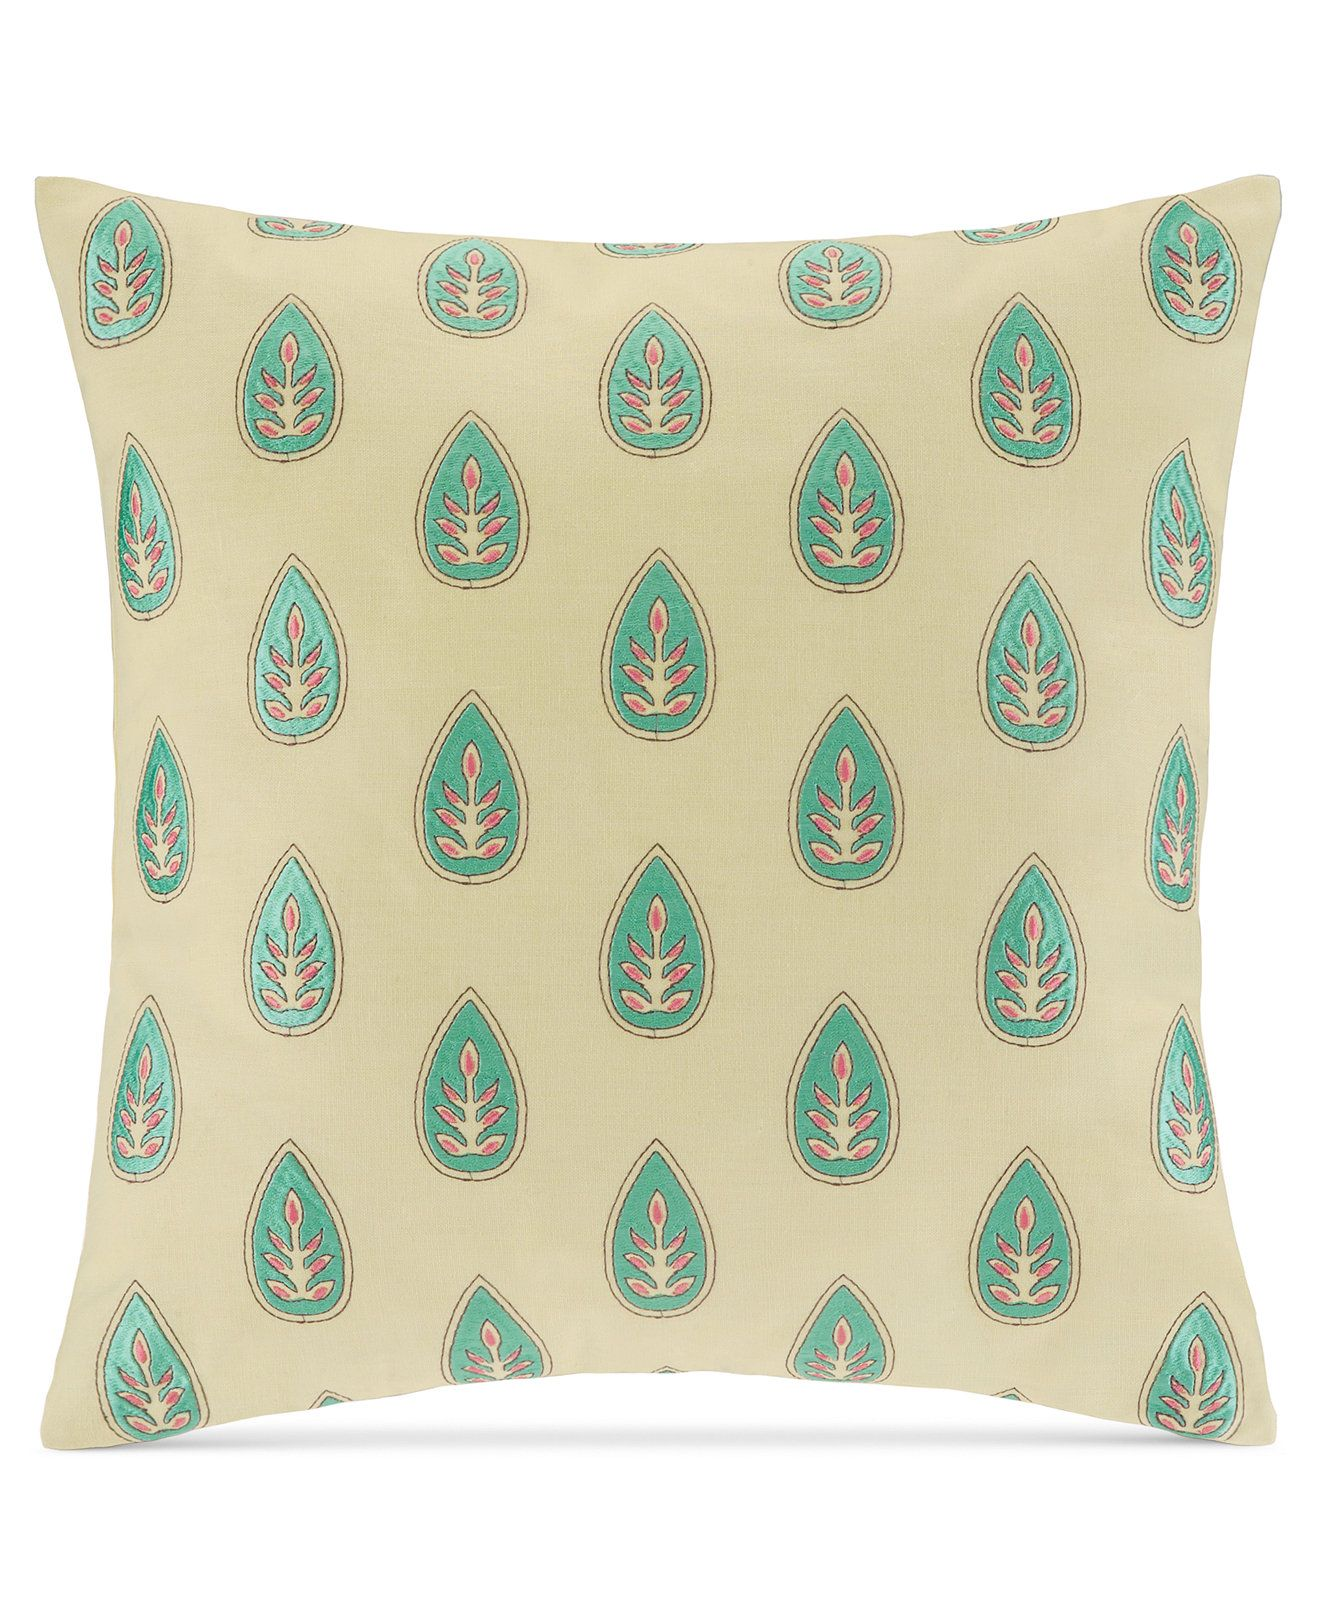 "Macy's Decorative Pillows Captivating Echo Guinevere 18"" Square Decorative Pillow  Bedding Collections Decorating Design"